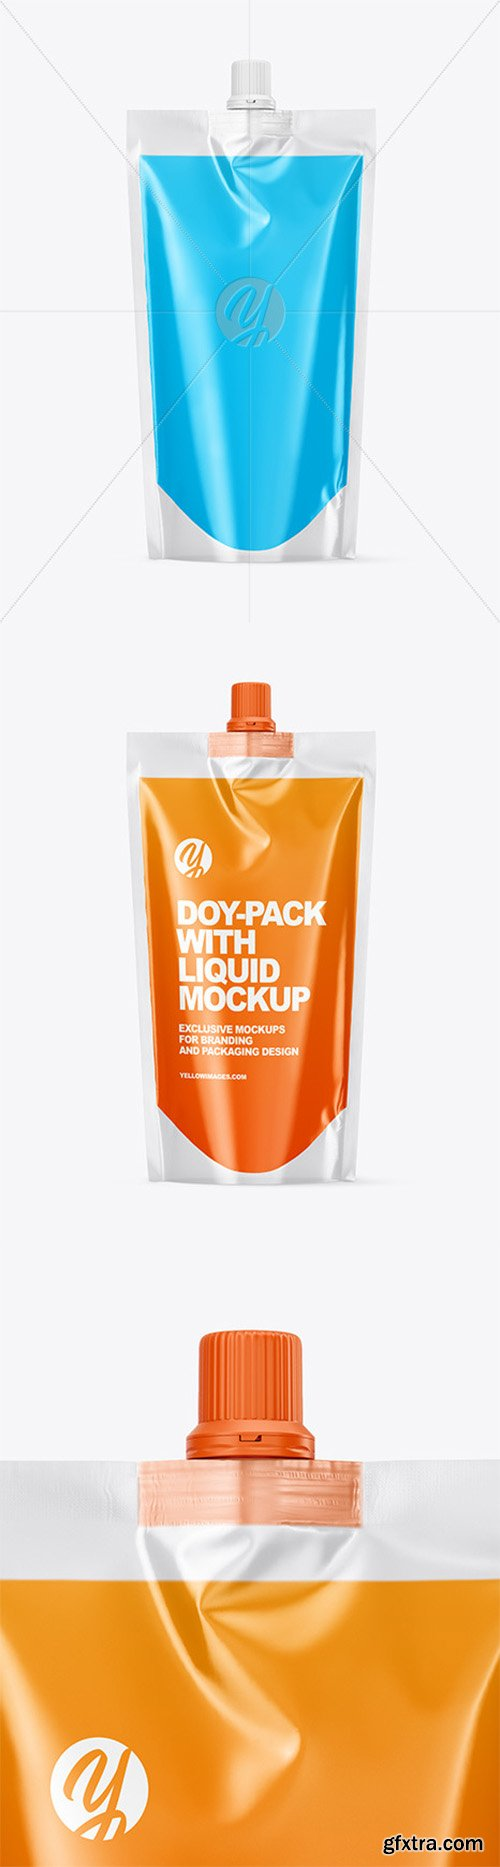 Doy-Pack with Liquid Mockup 61330